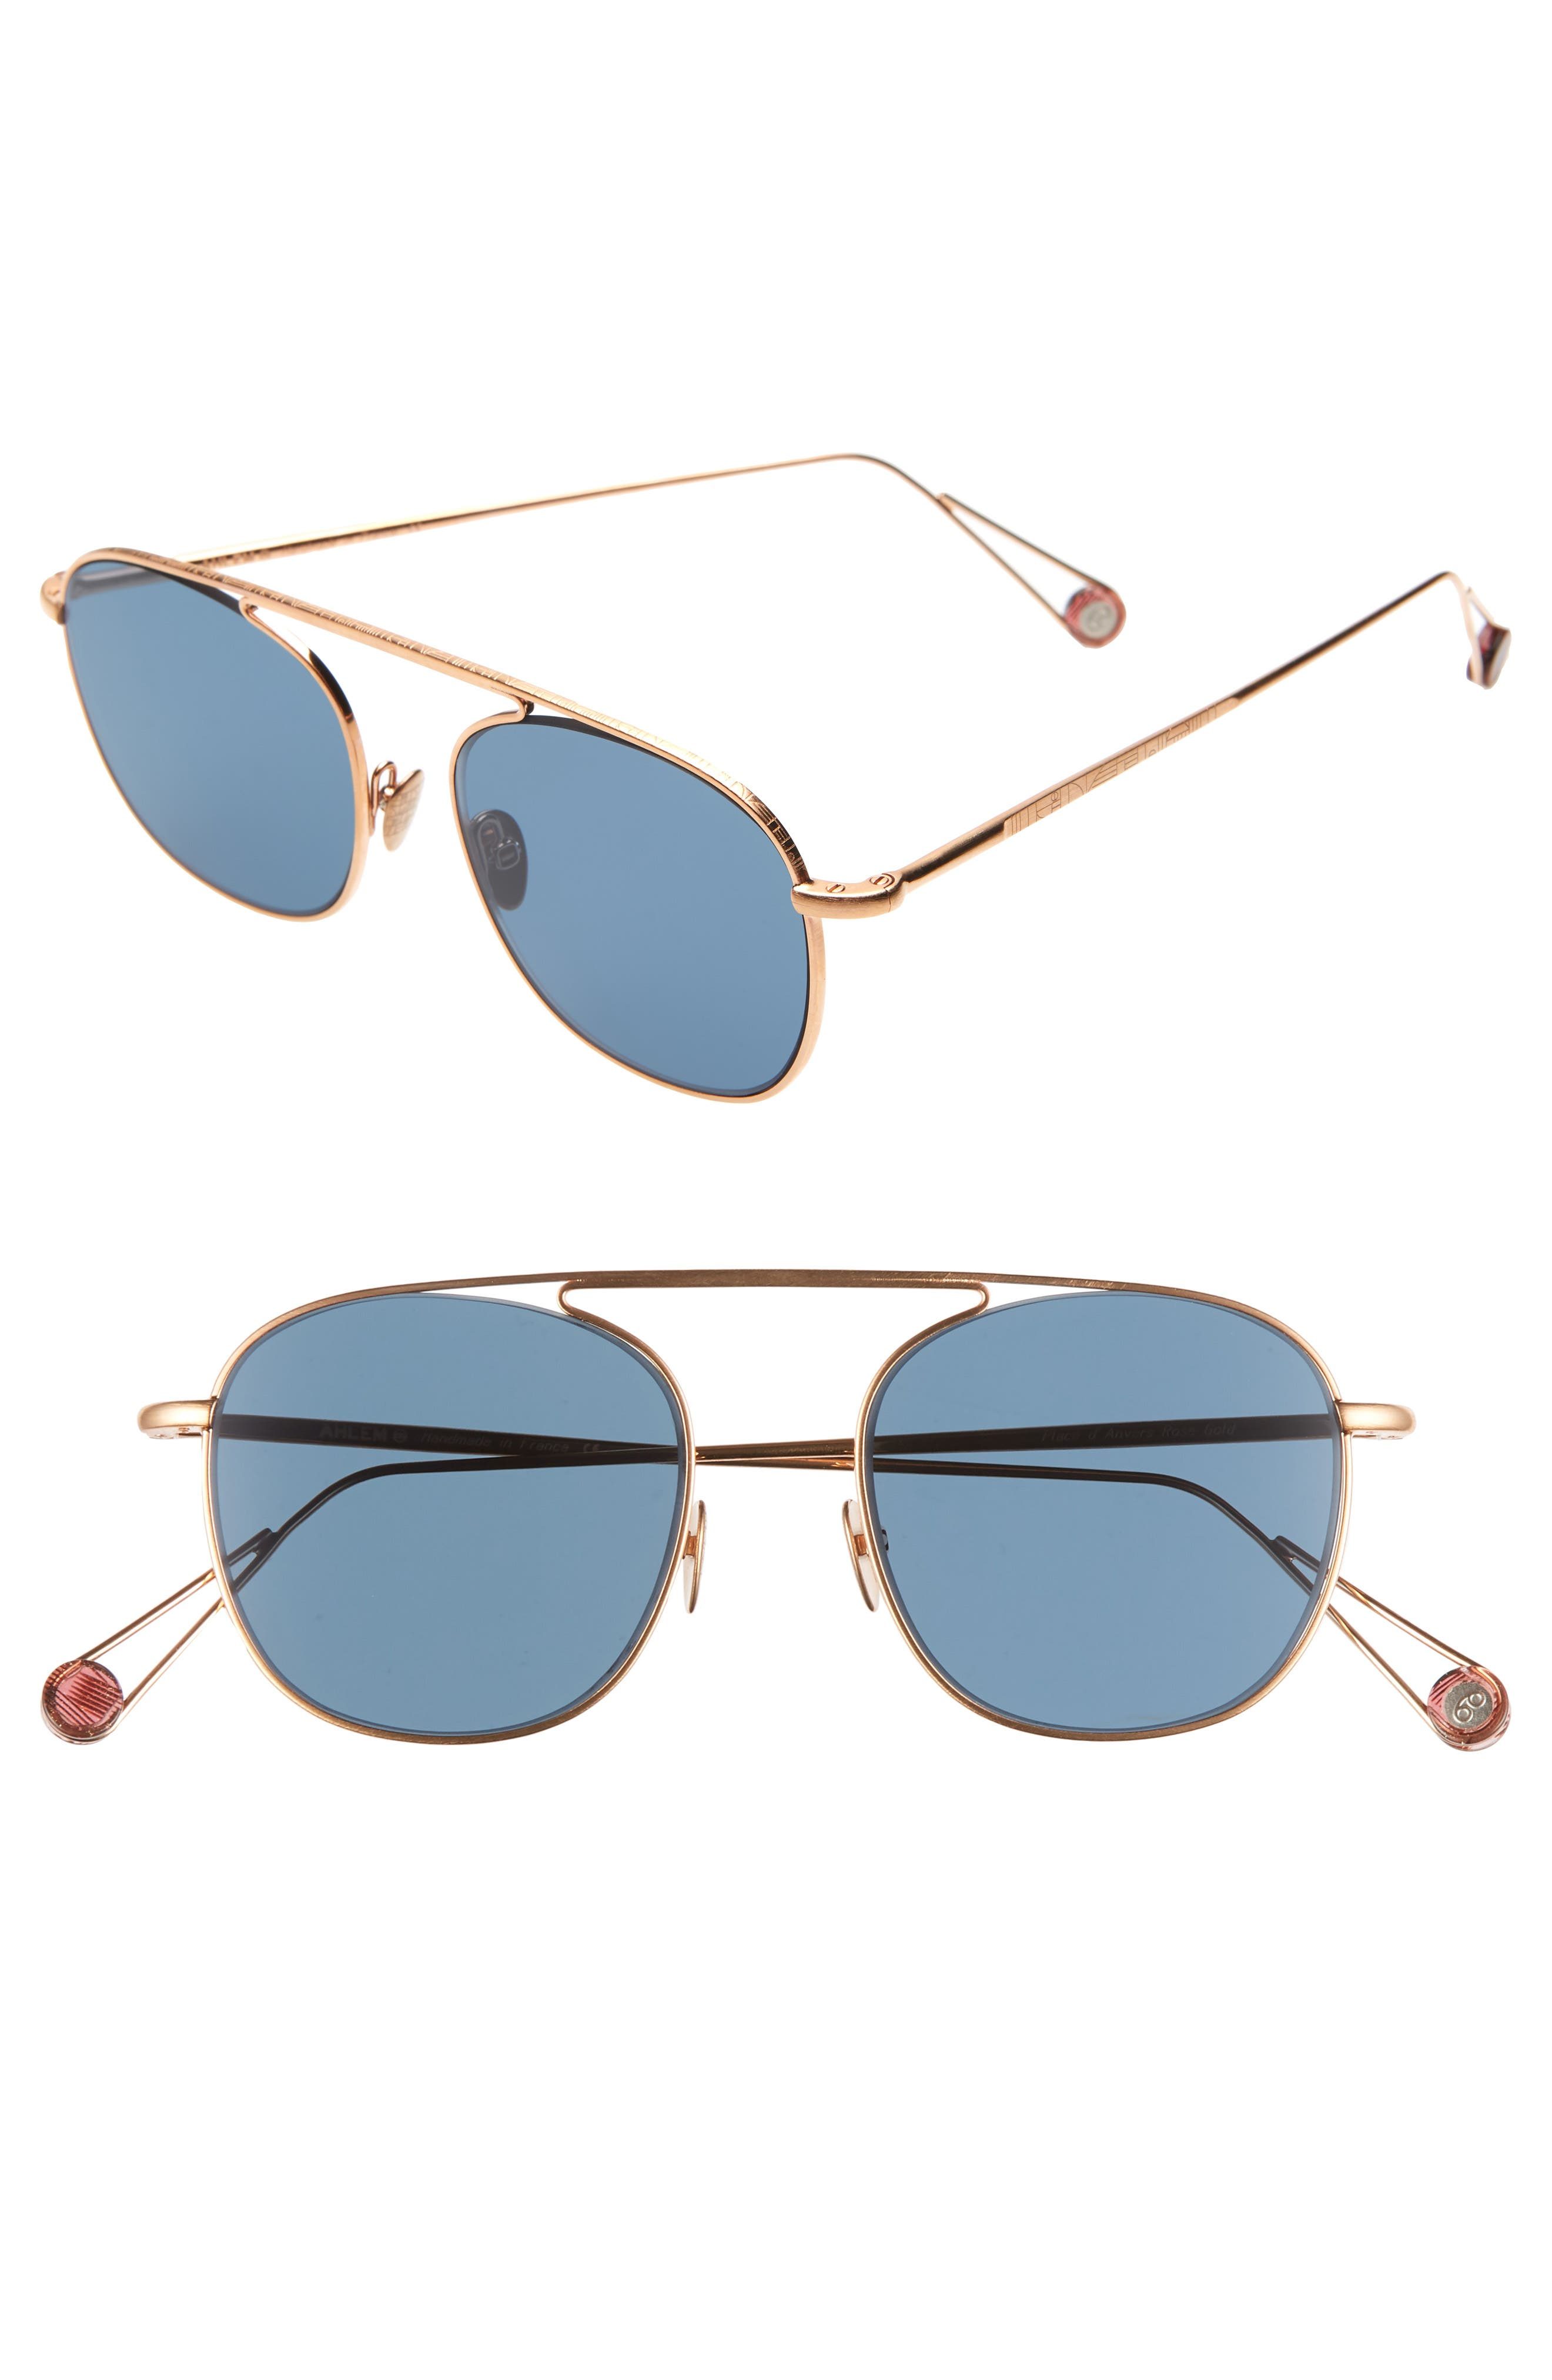 AHLEM D'Anvers 49Mm Aviator Sunglasses in Rose Gold